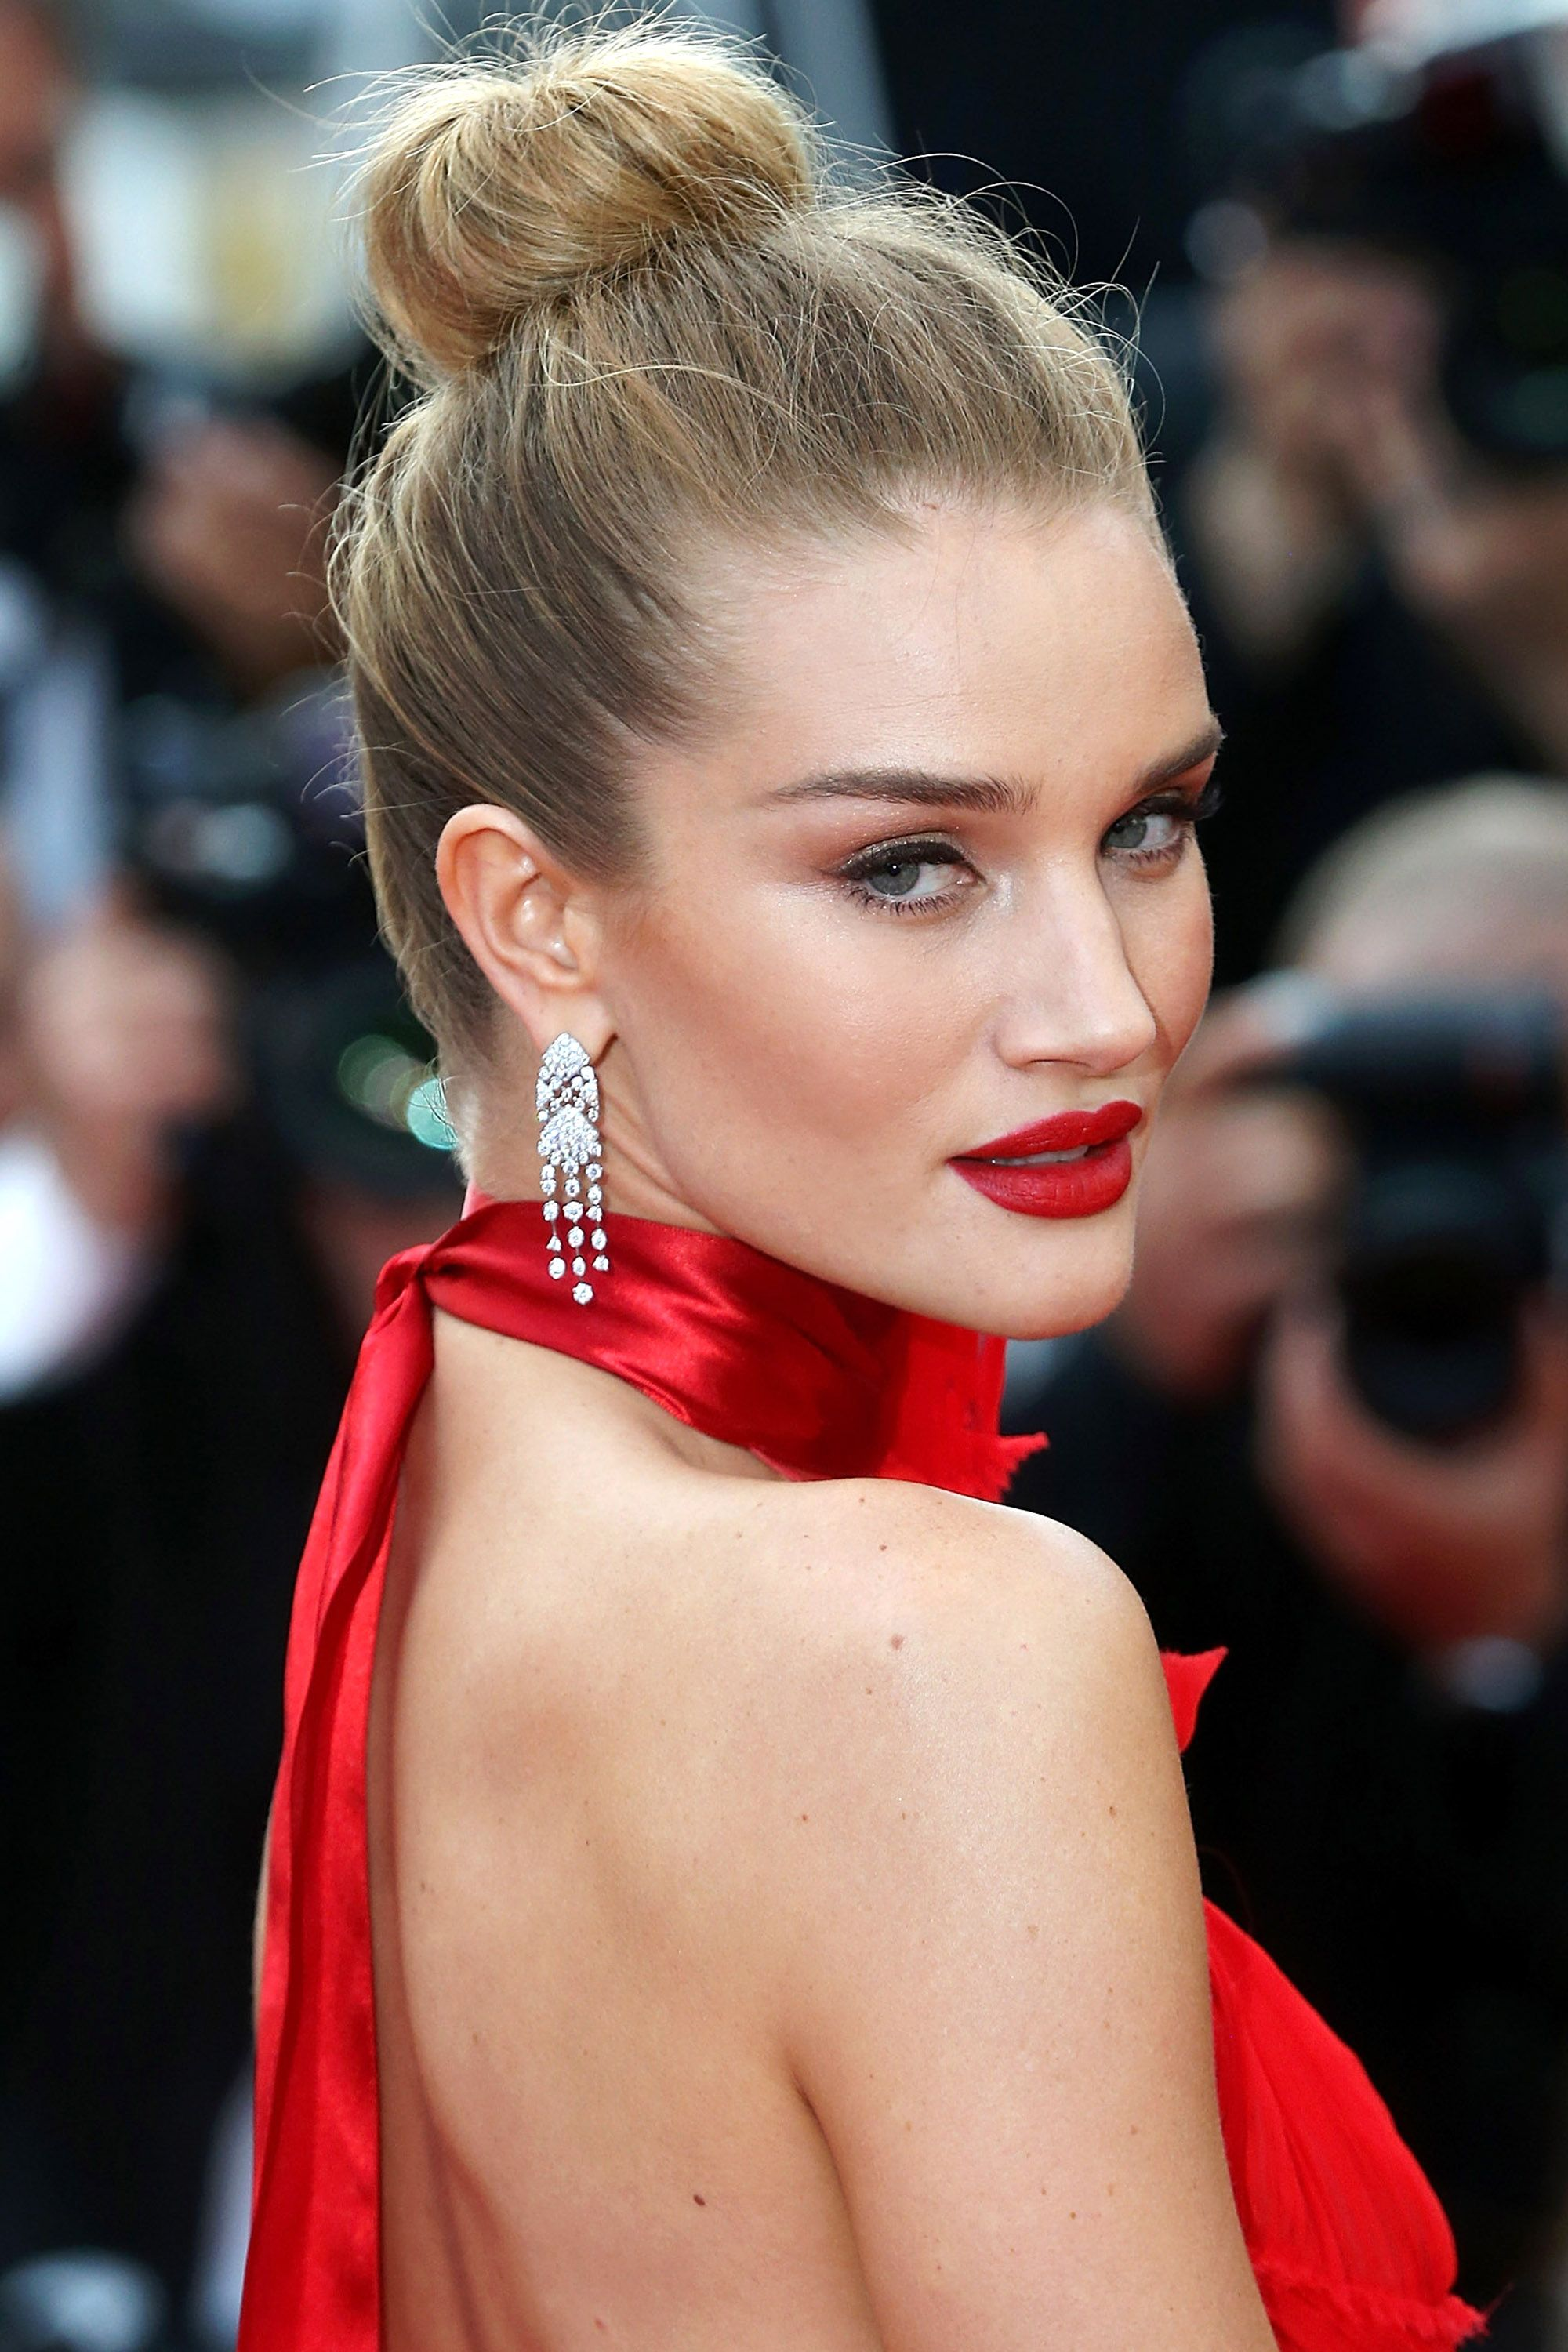 Cannes 2016 Beauty | Rosie Huntington- Whiteley - May 19, 2016